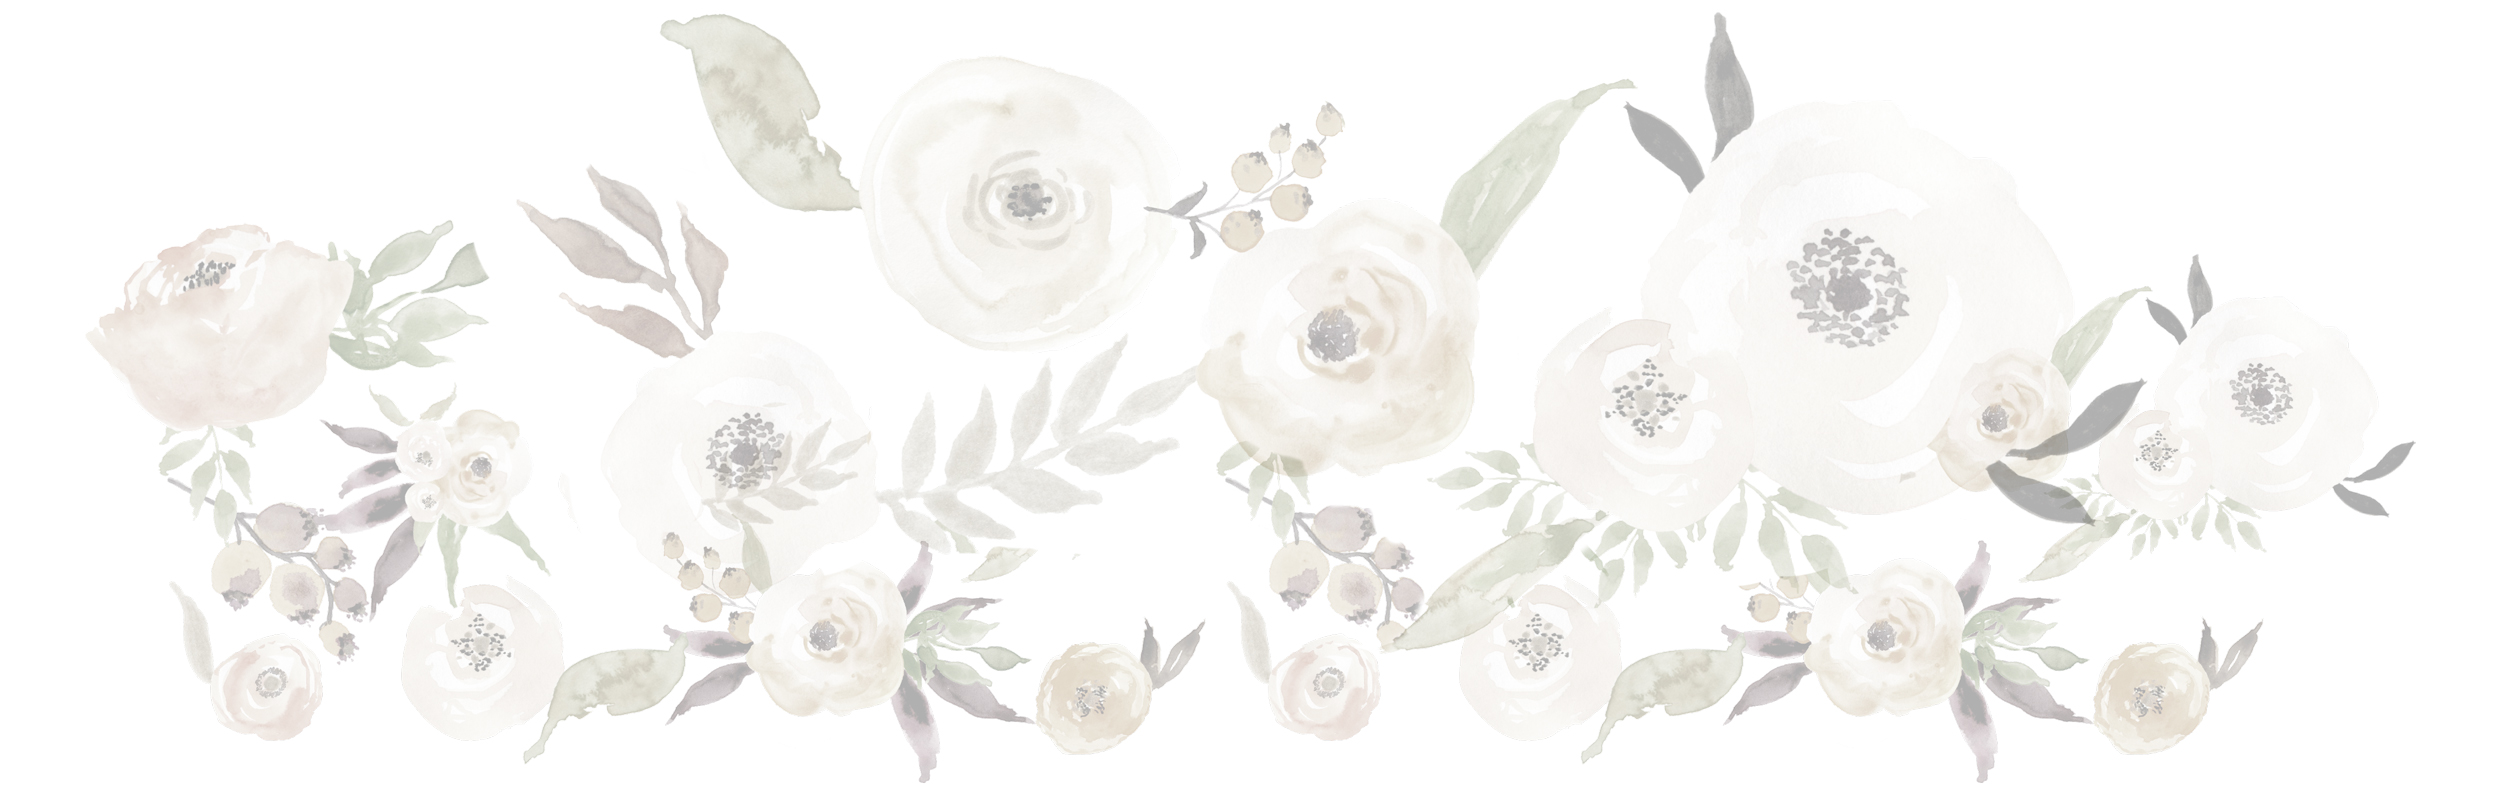 watercolour flowers design element